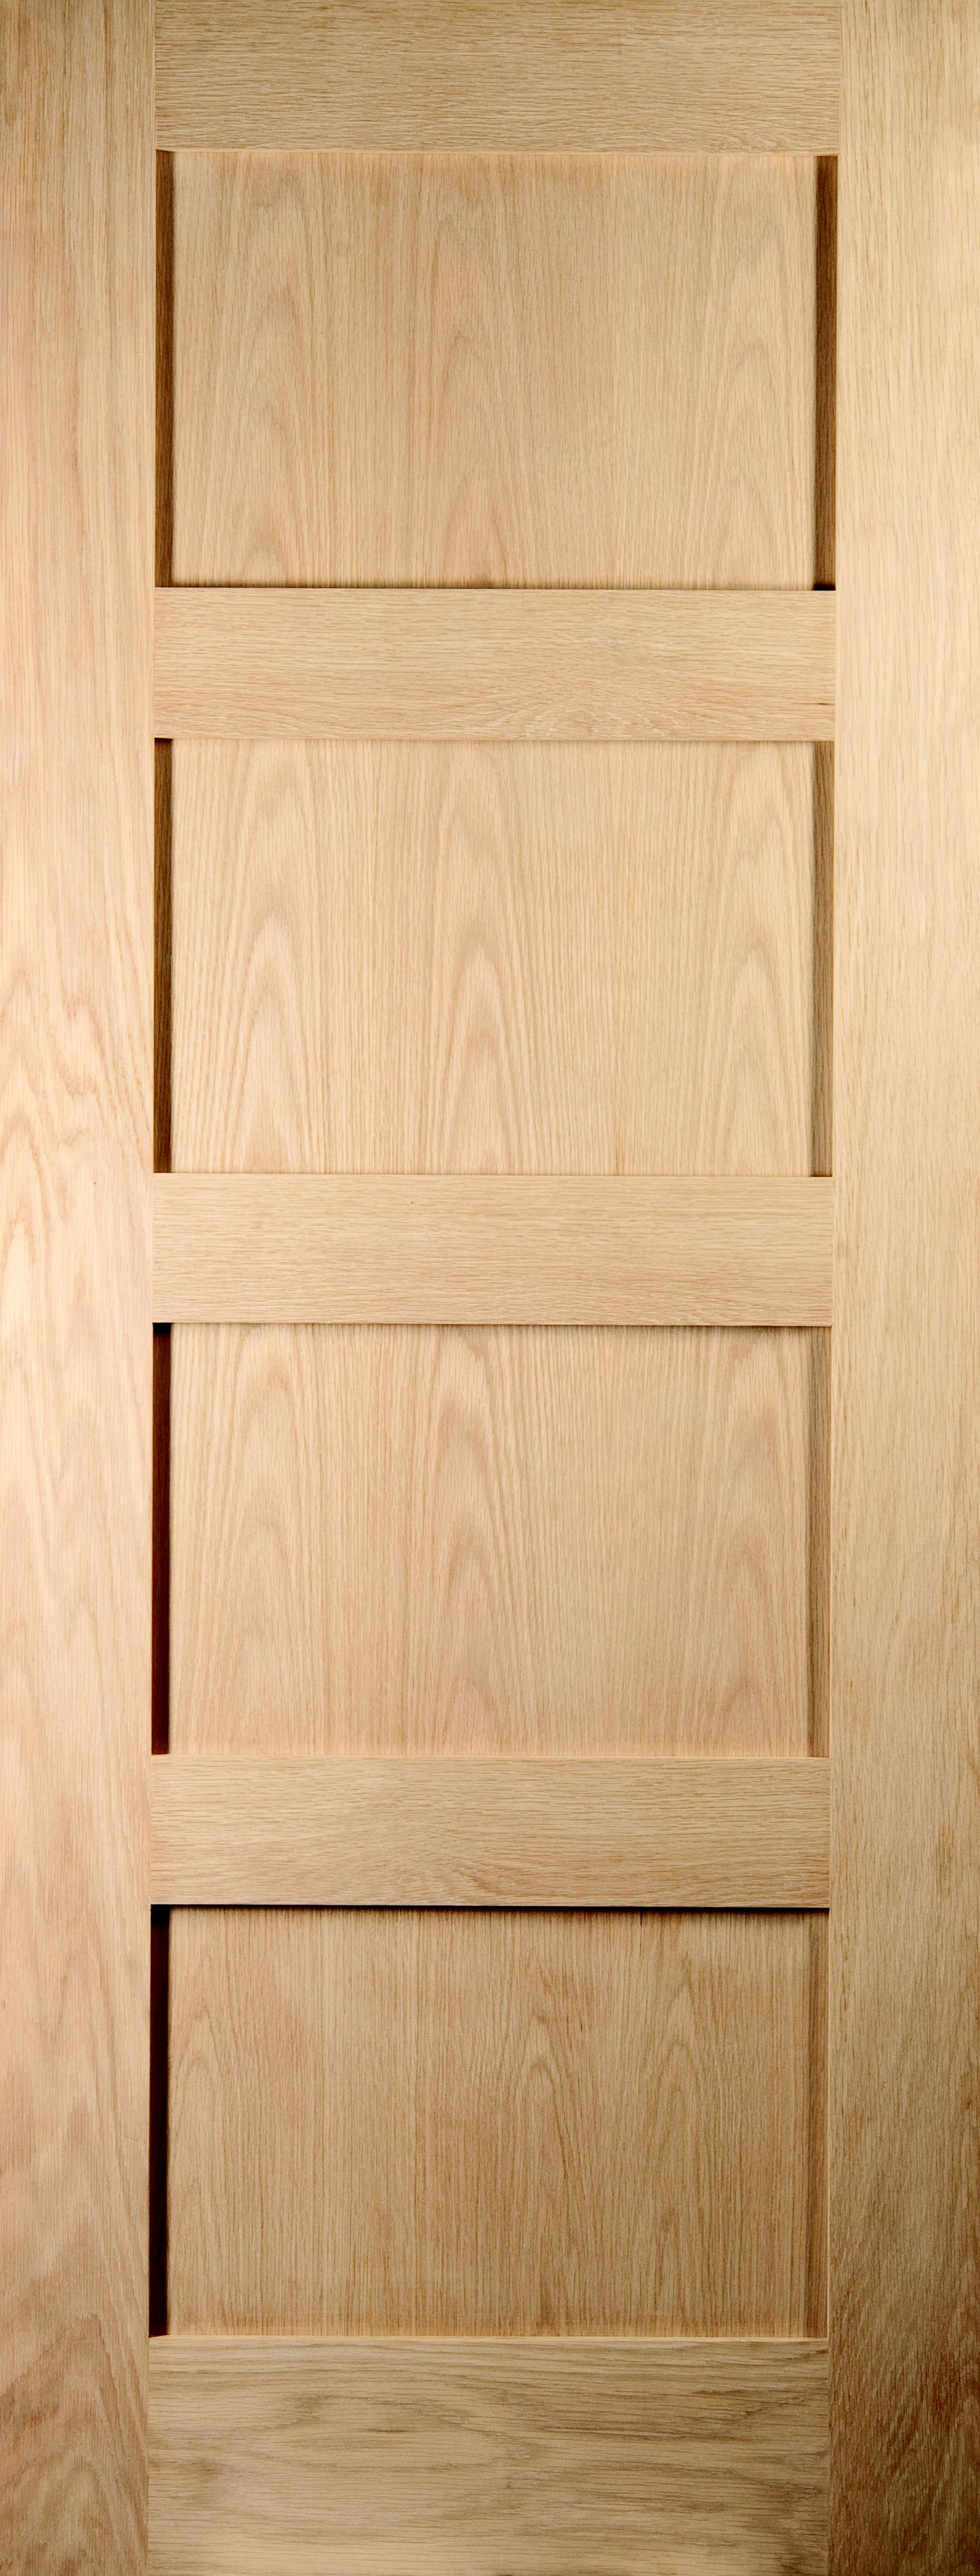 4 Panel Shaker Oak Veneer Unglazed Internal Standard Door, (h)1981mm (w)686mm